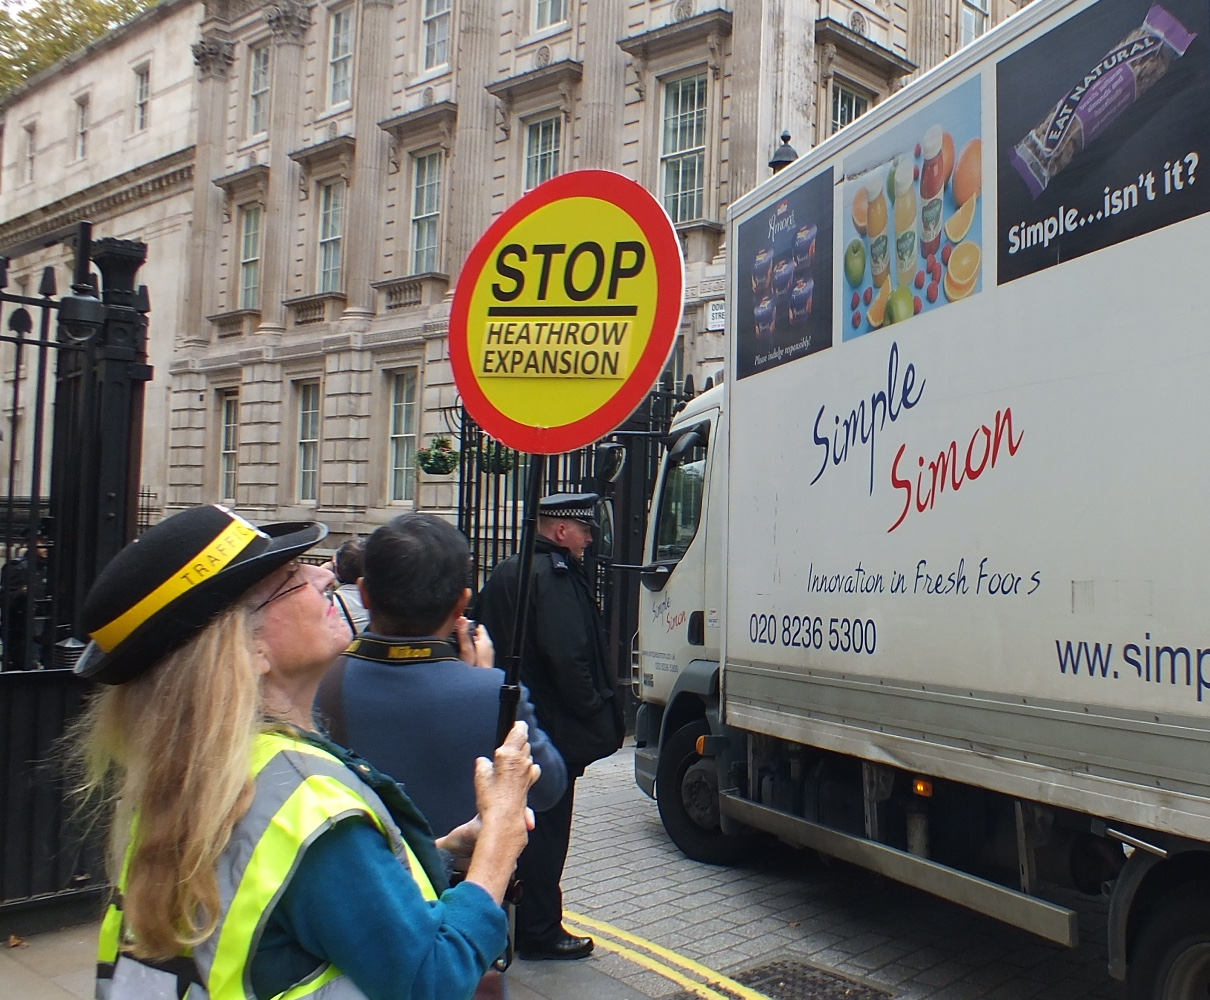 """Stop Heathrow Expansion - as the lorry delivering to Downing Street says, """"Simple....isn't it?"""""""